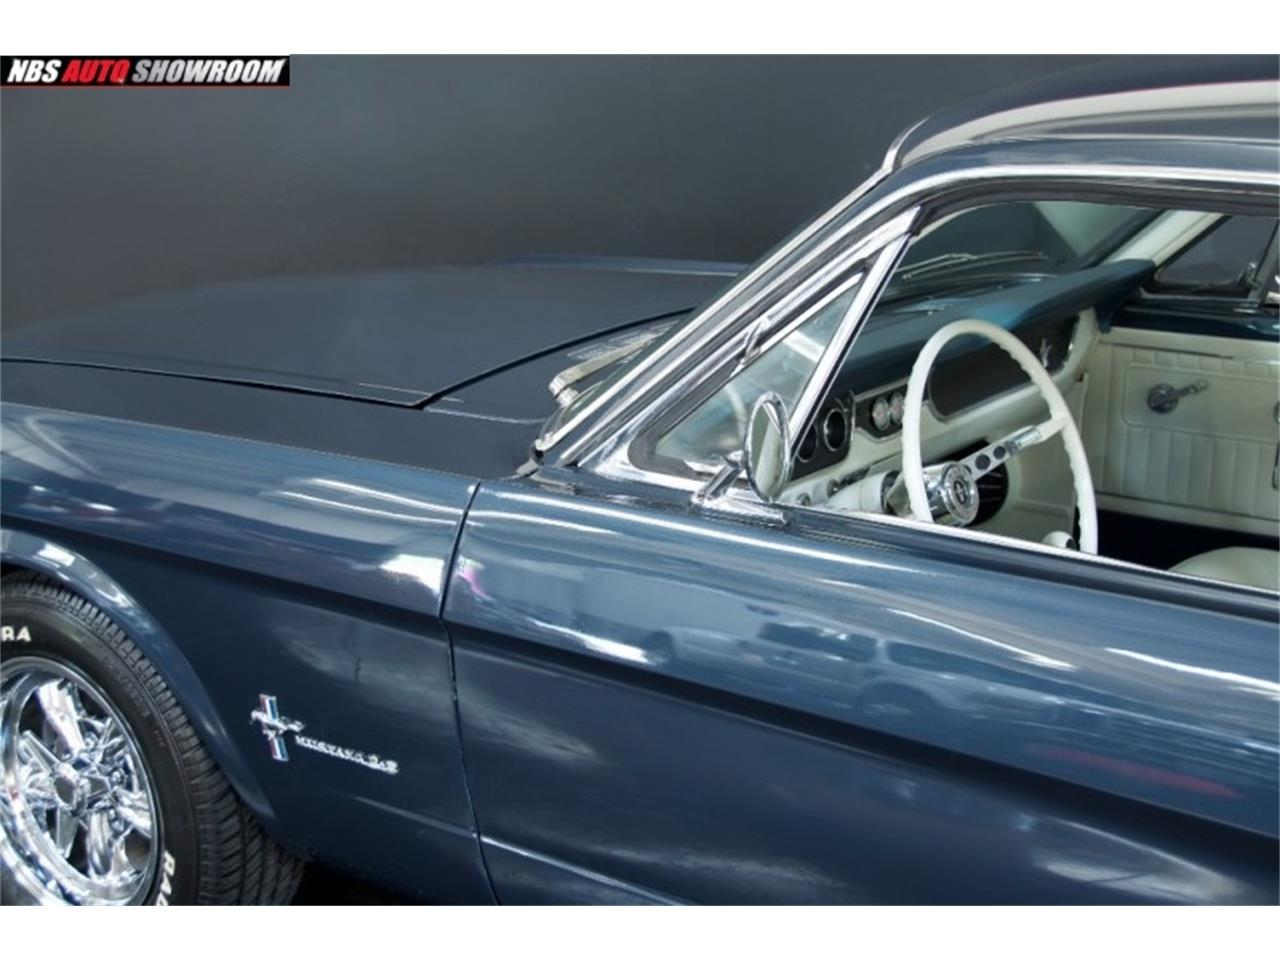 Large Picture of 1965 Mustang located in Milpitas California - $37,074.00 Offered by NBS Auto Showroom - PHR5